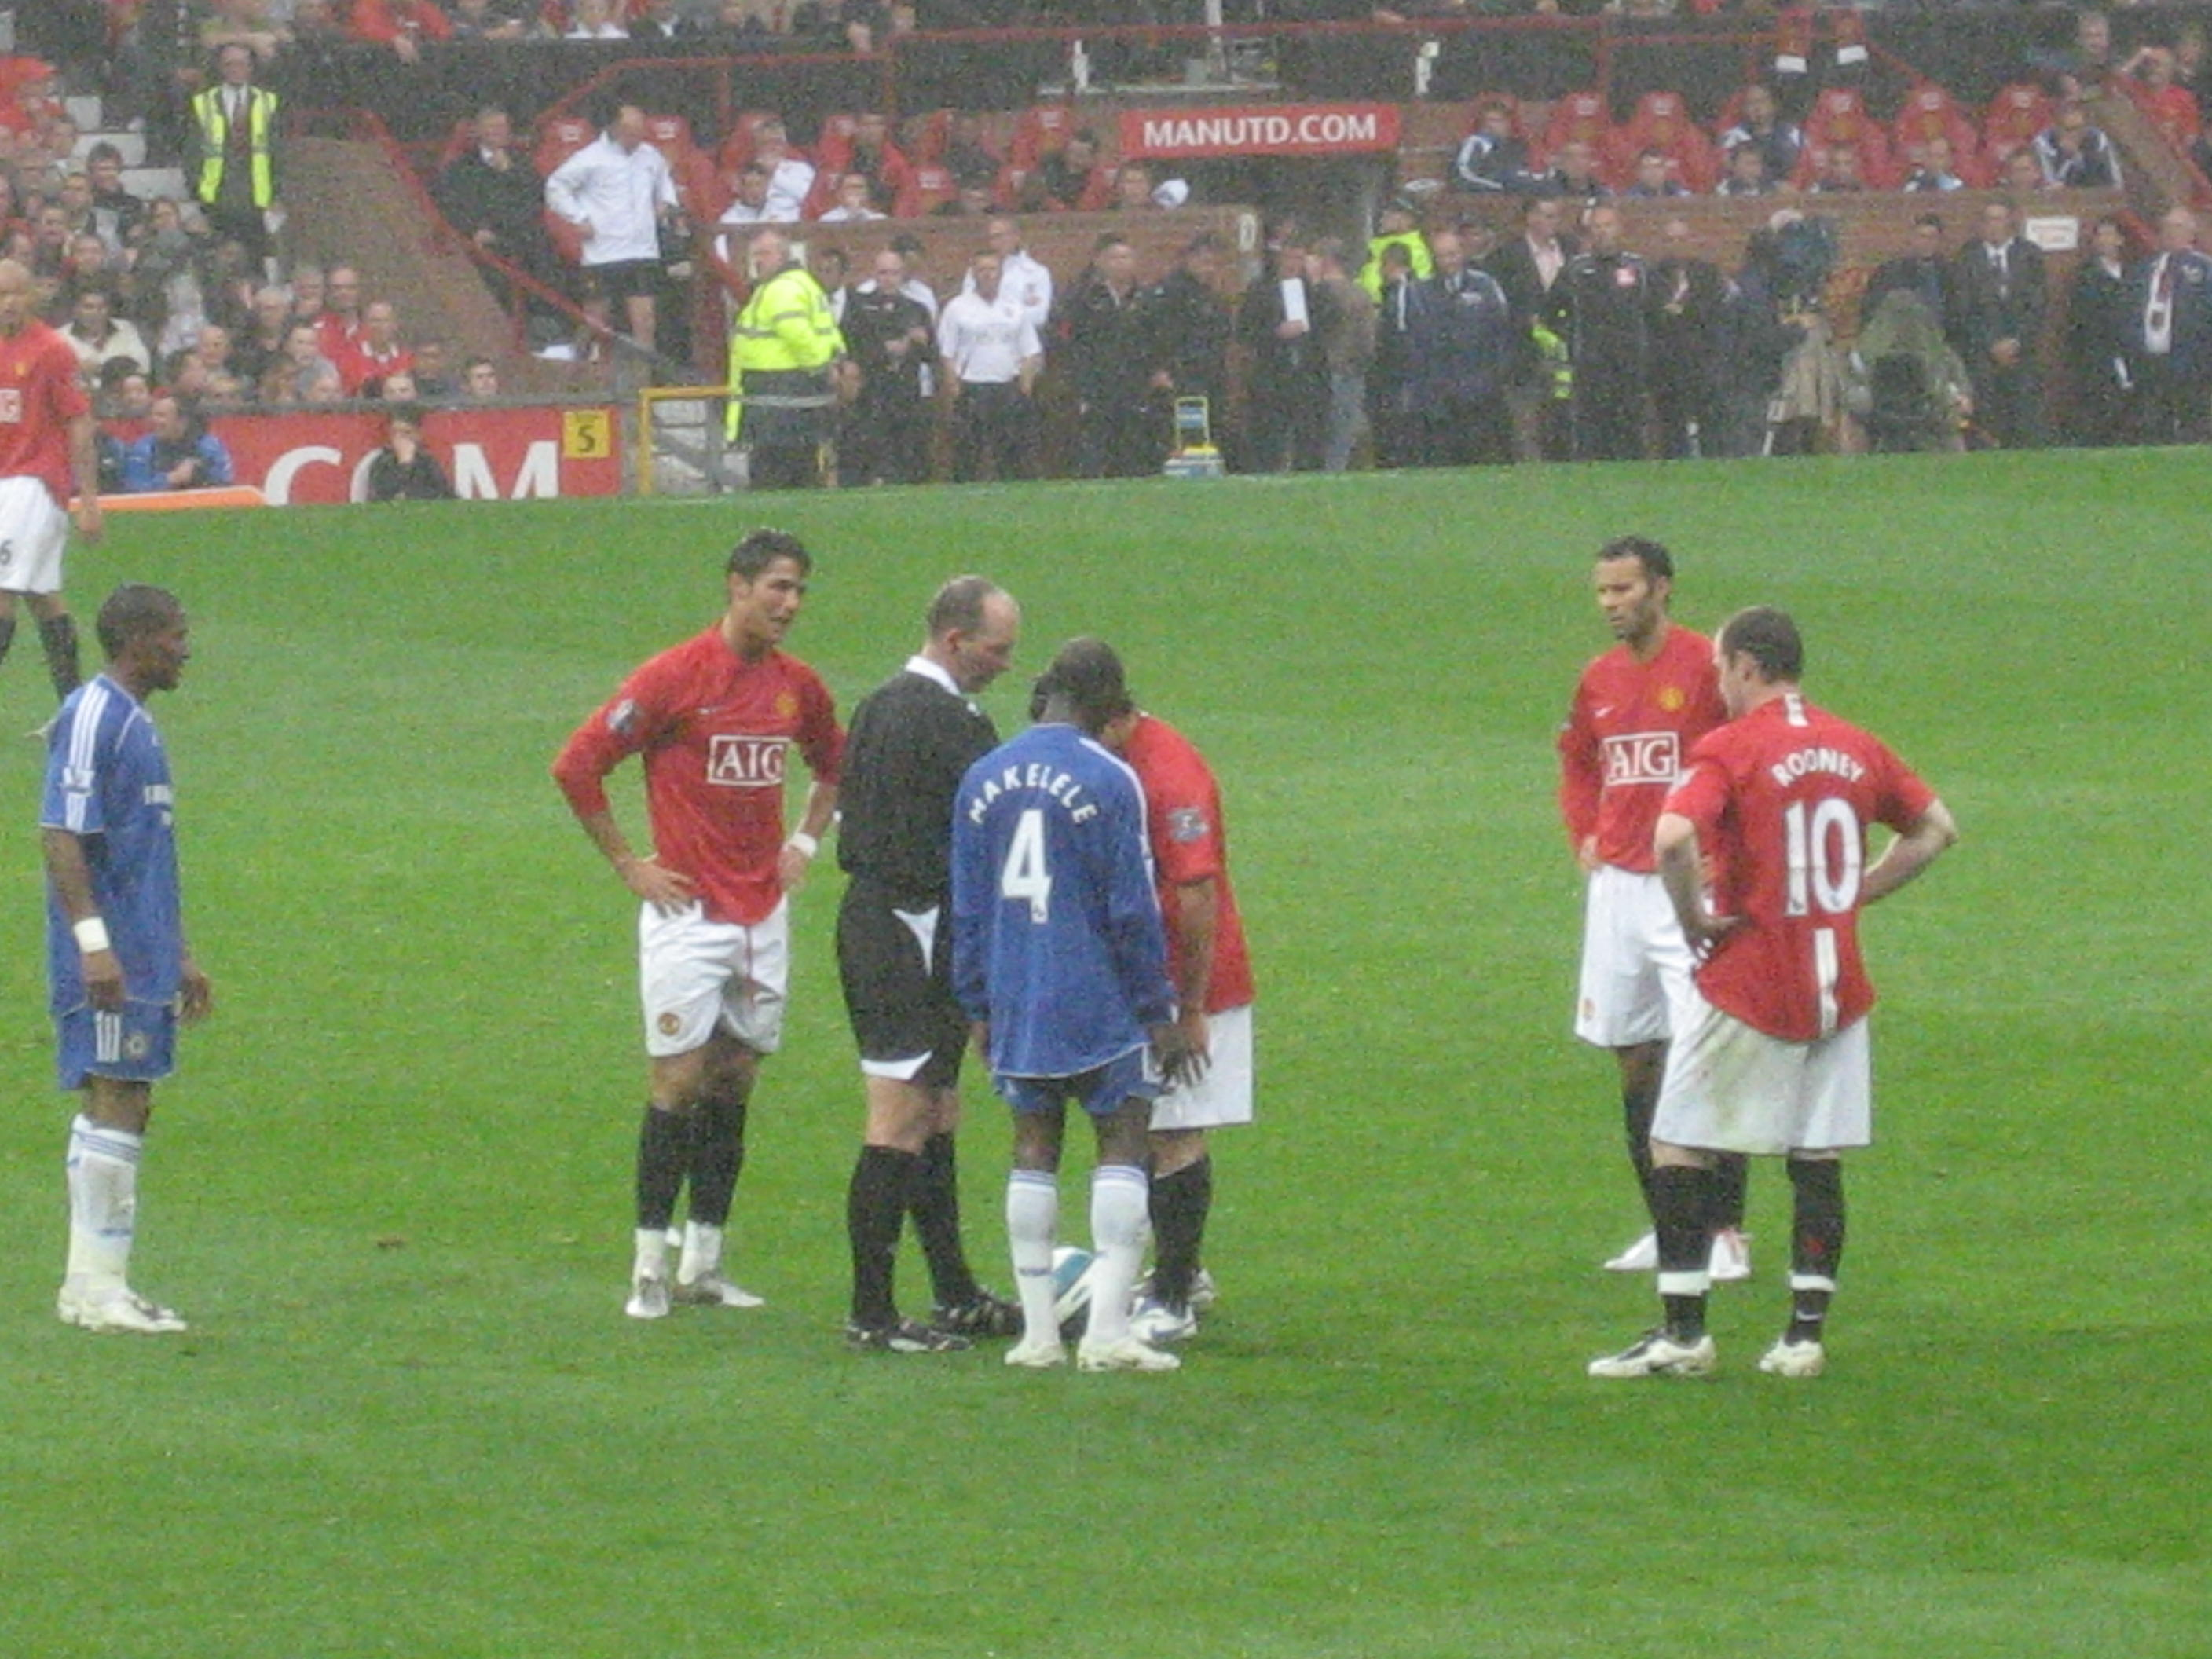 File:Man U Vs Chelsea Ref.jpg - Wikimedia Commons : Chelsea Images ...